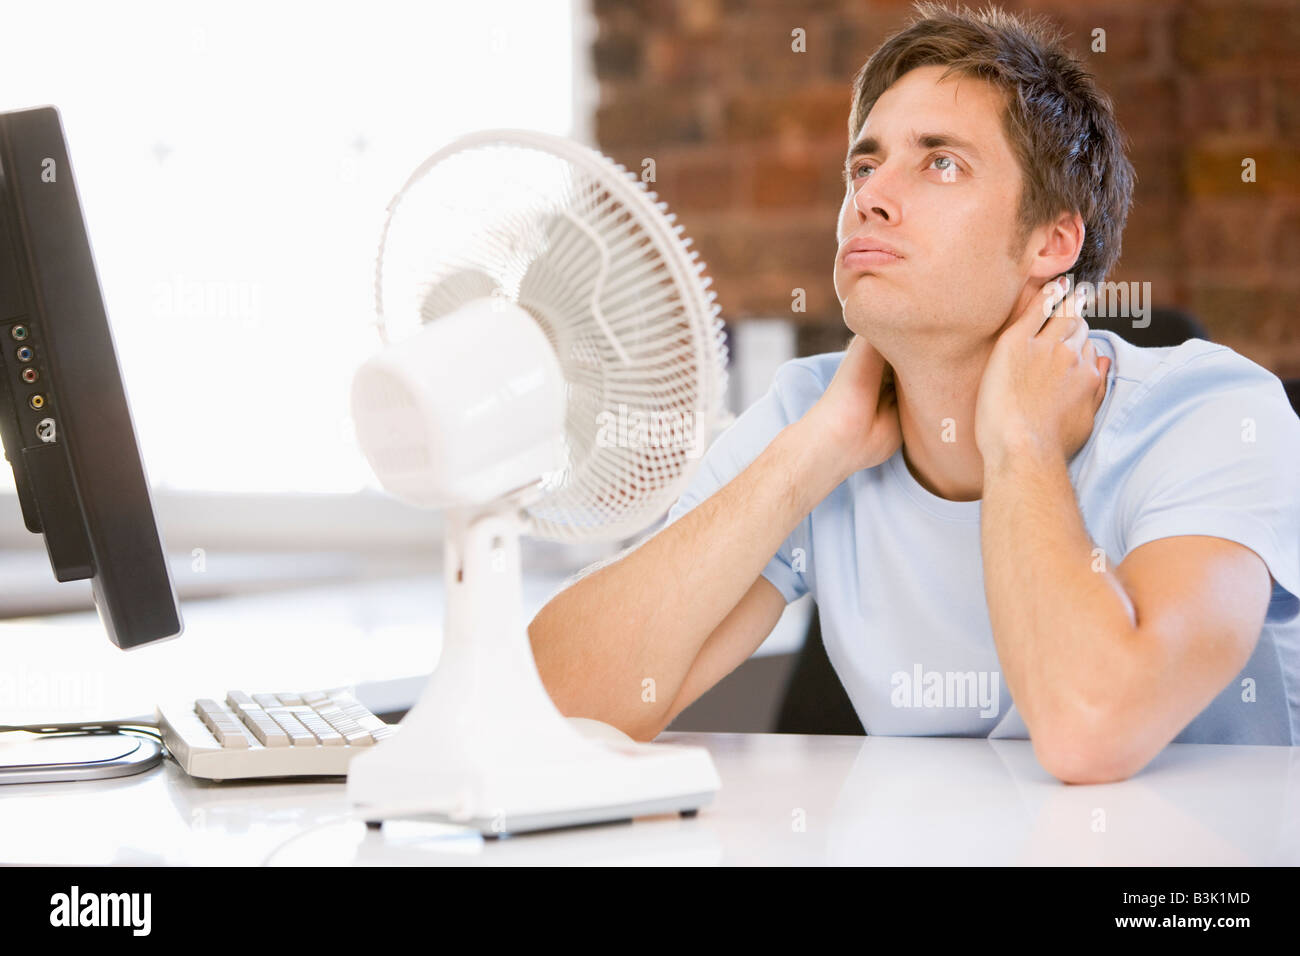 Businessman in office with computer and fan cooling off - Stock Image